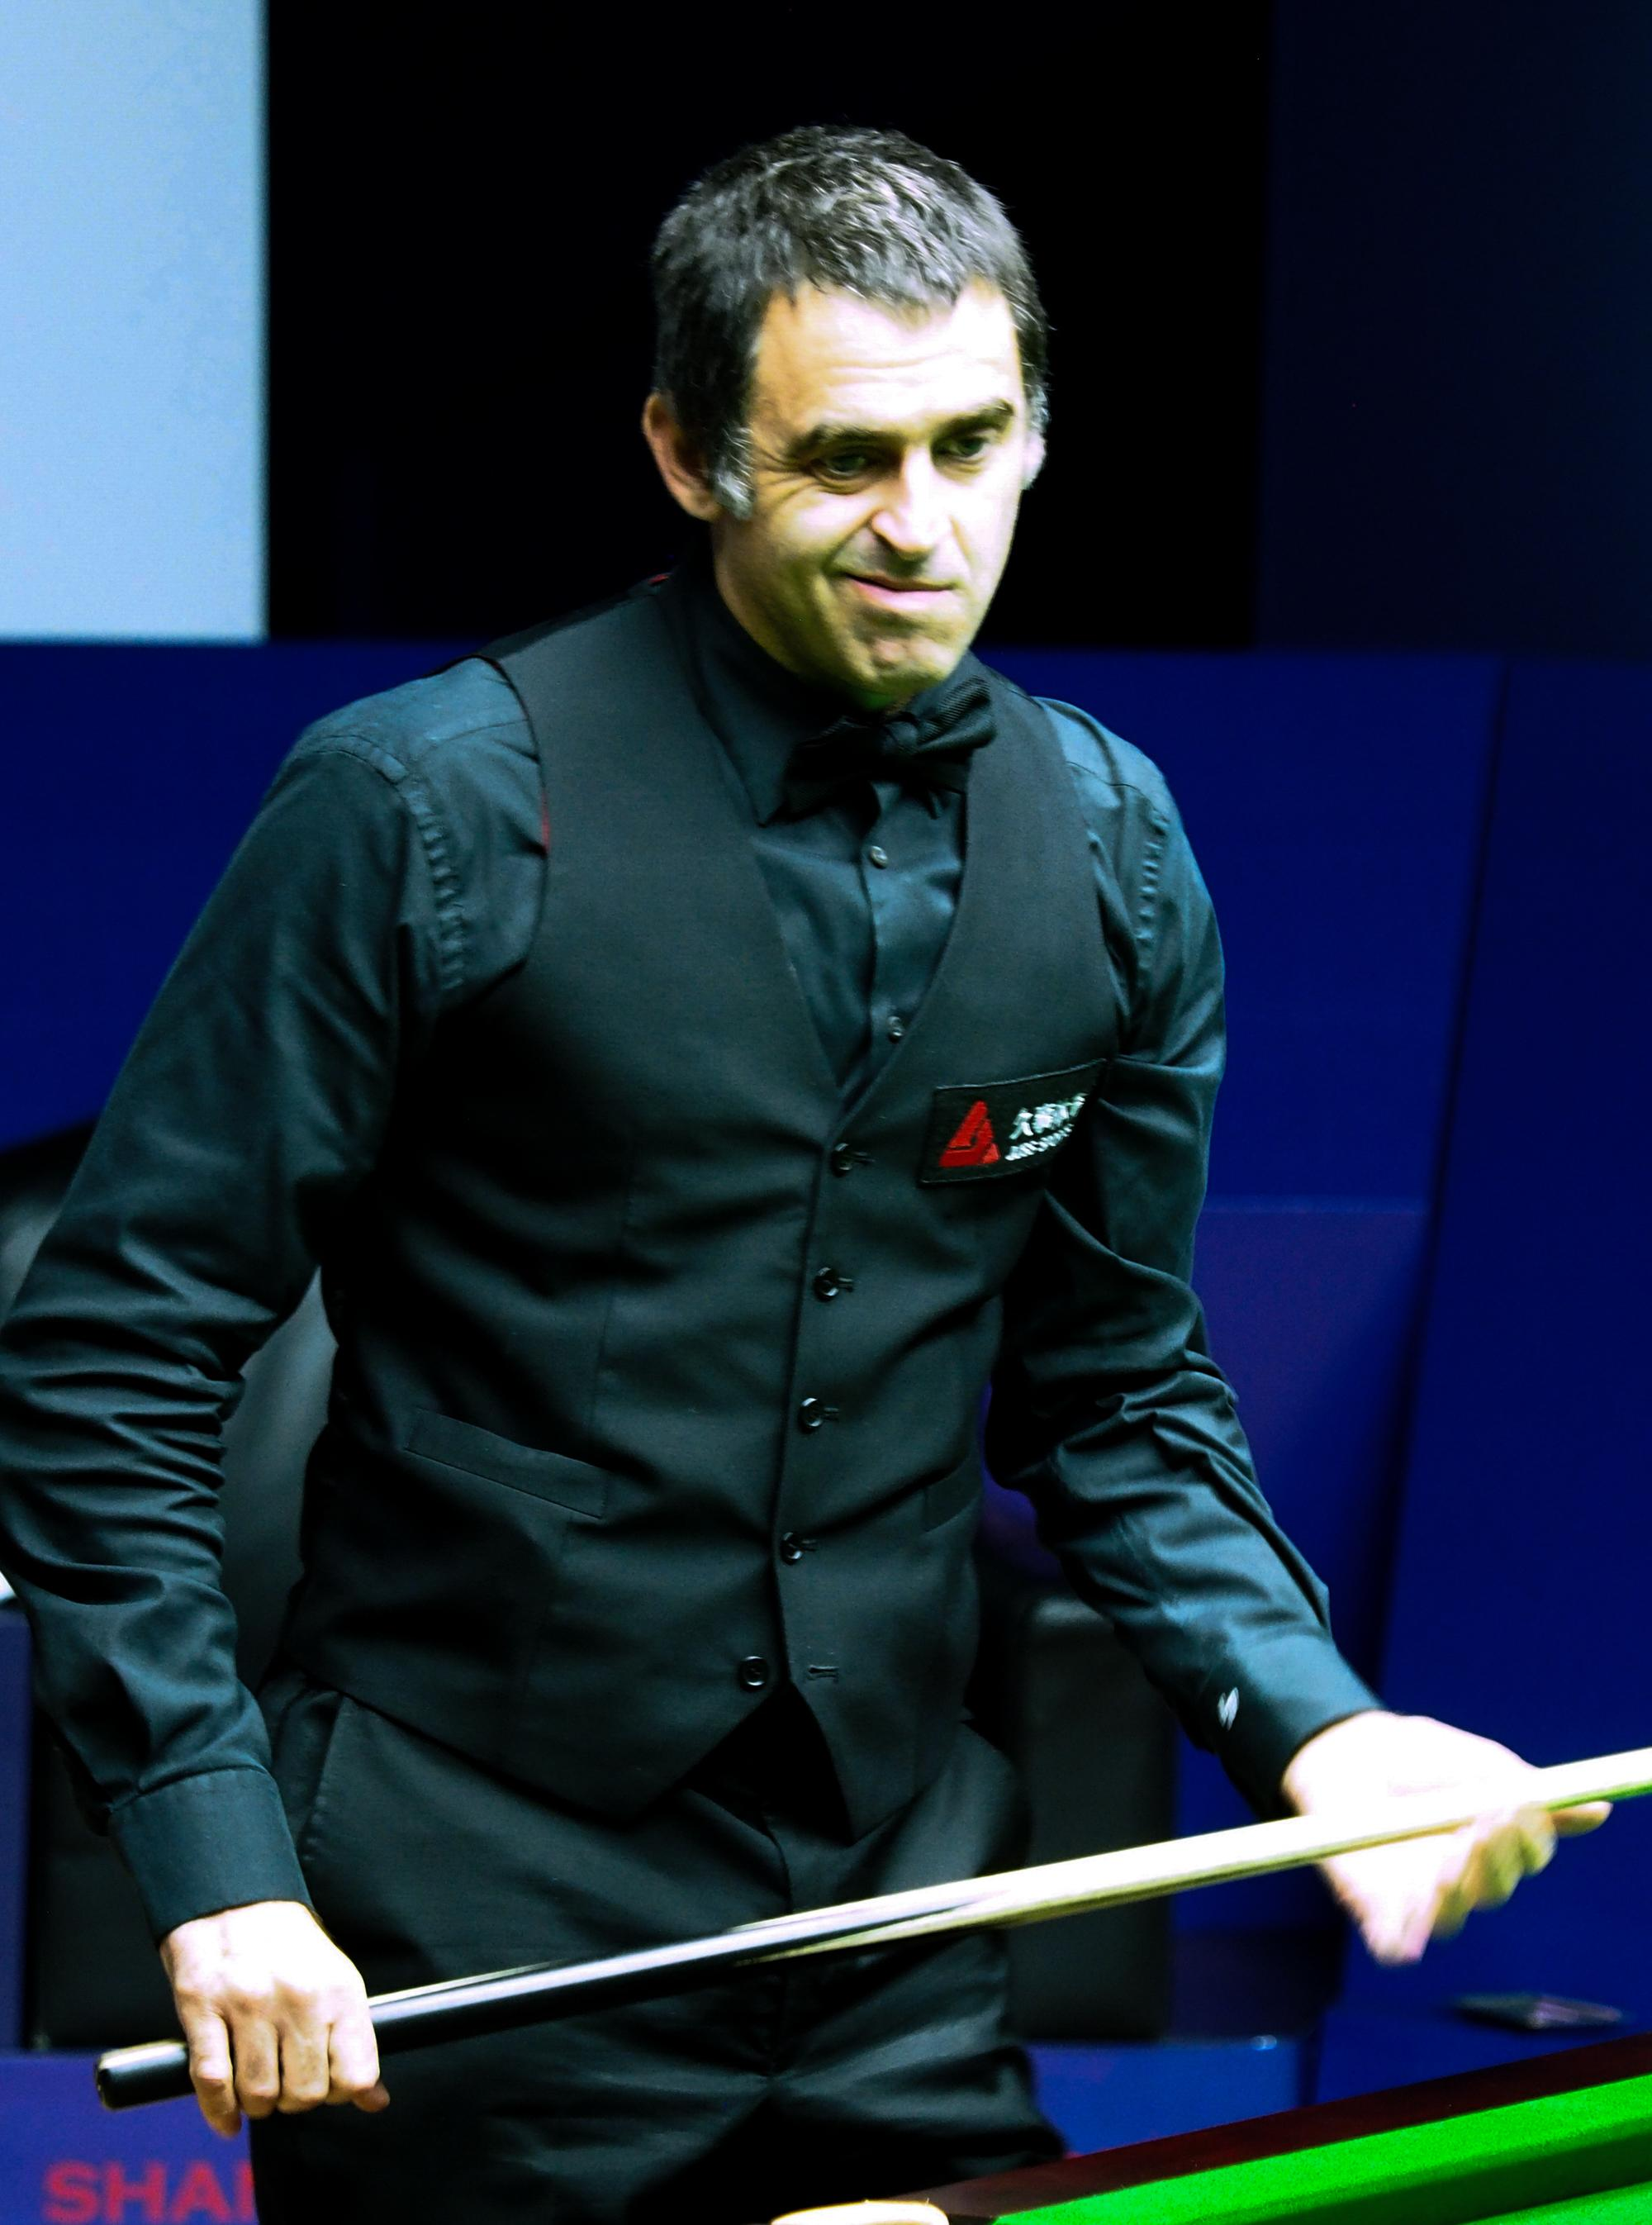 Ronnie O'Sullivan isn't happy - and this was despite him winning his first-round clash at the English Open